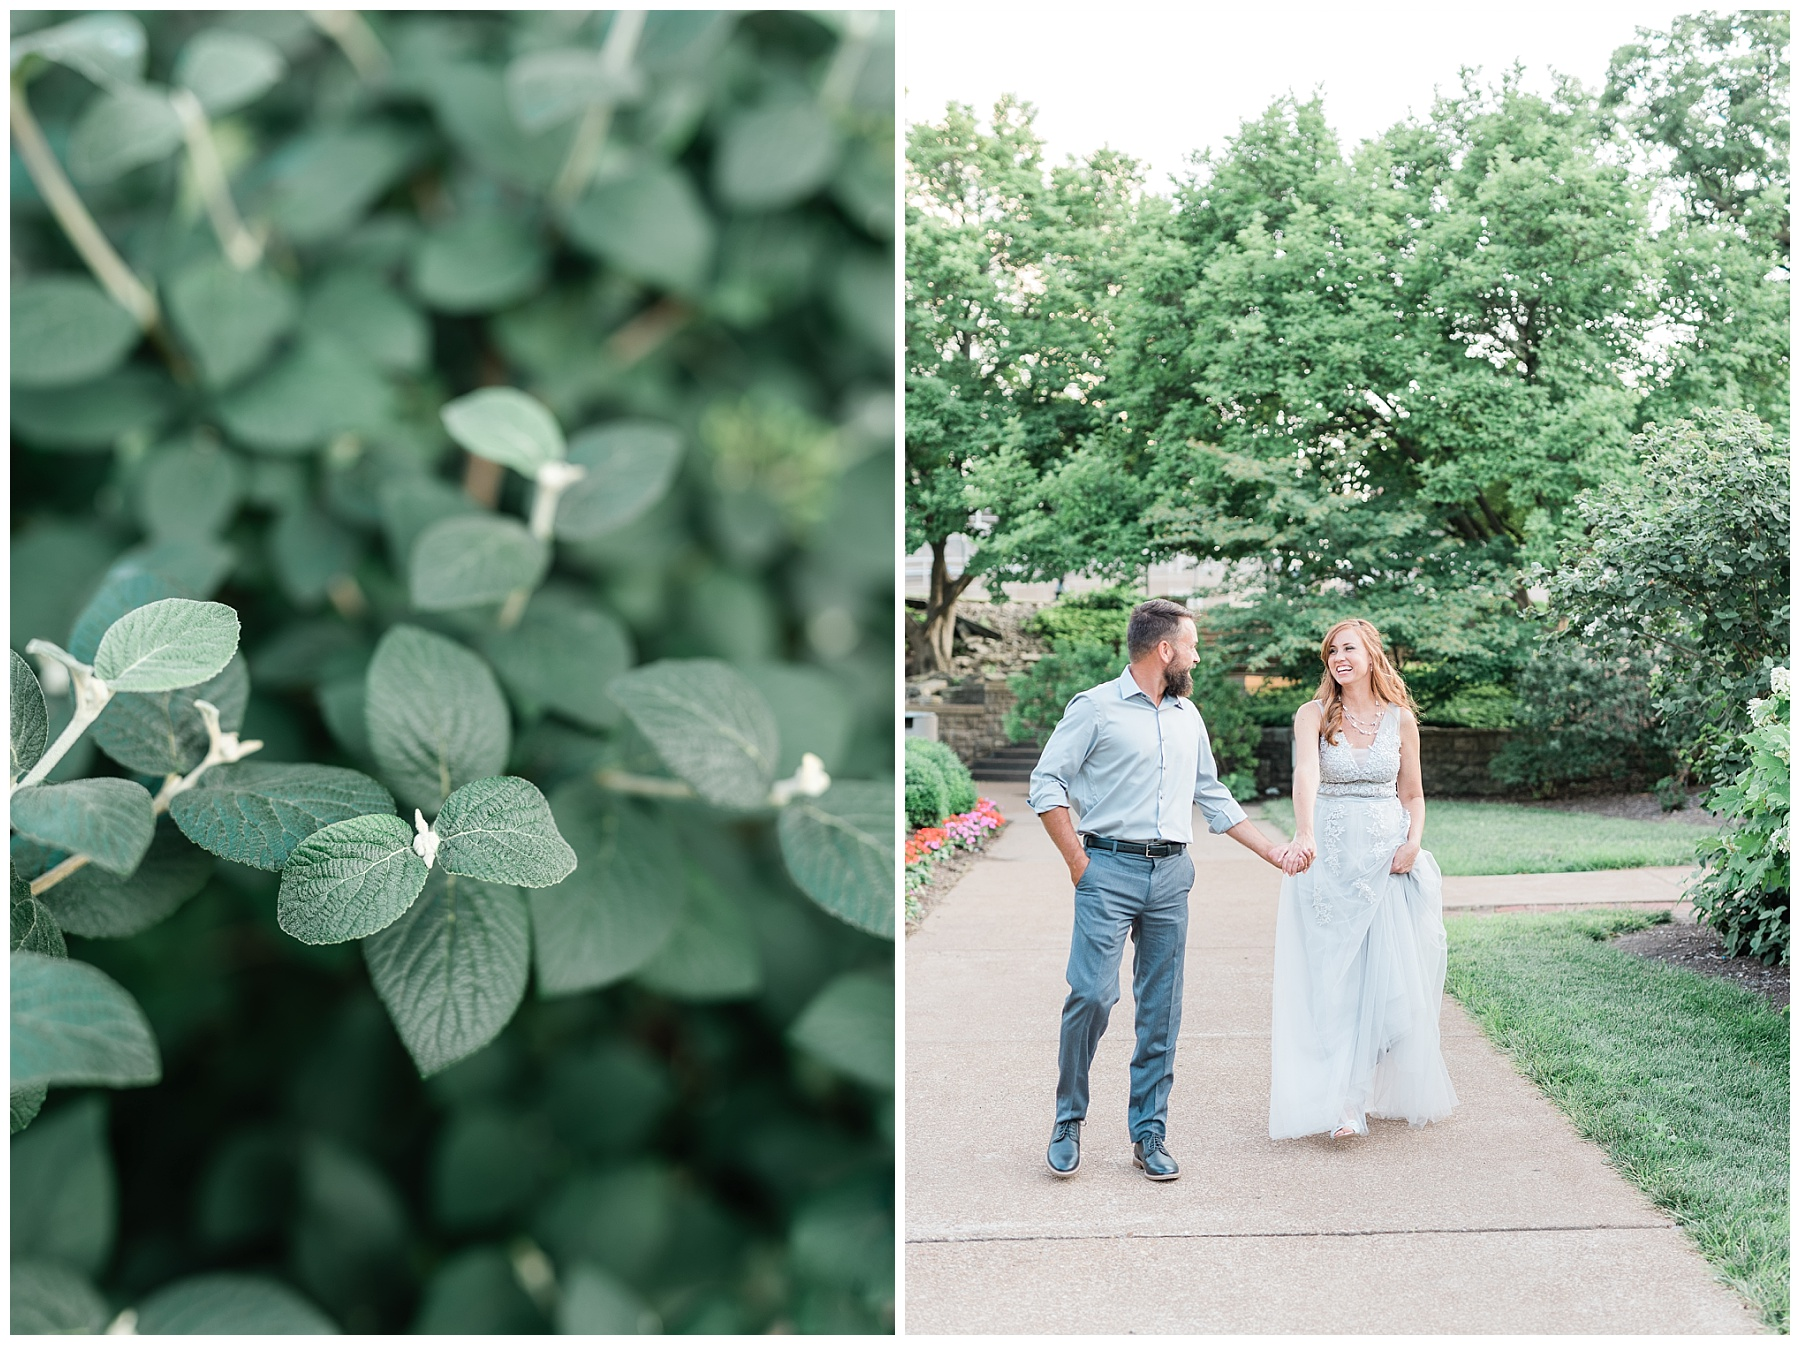 Chuck and Julie 25th Anniversary in Silver at Missouri Governor's Gardens by Kelsi Kliethermes Photography_0002.jpg